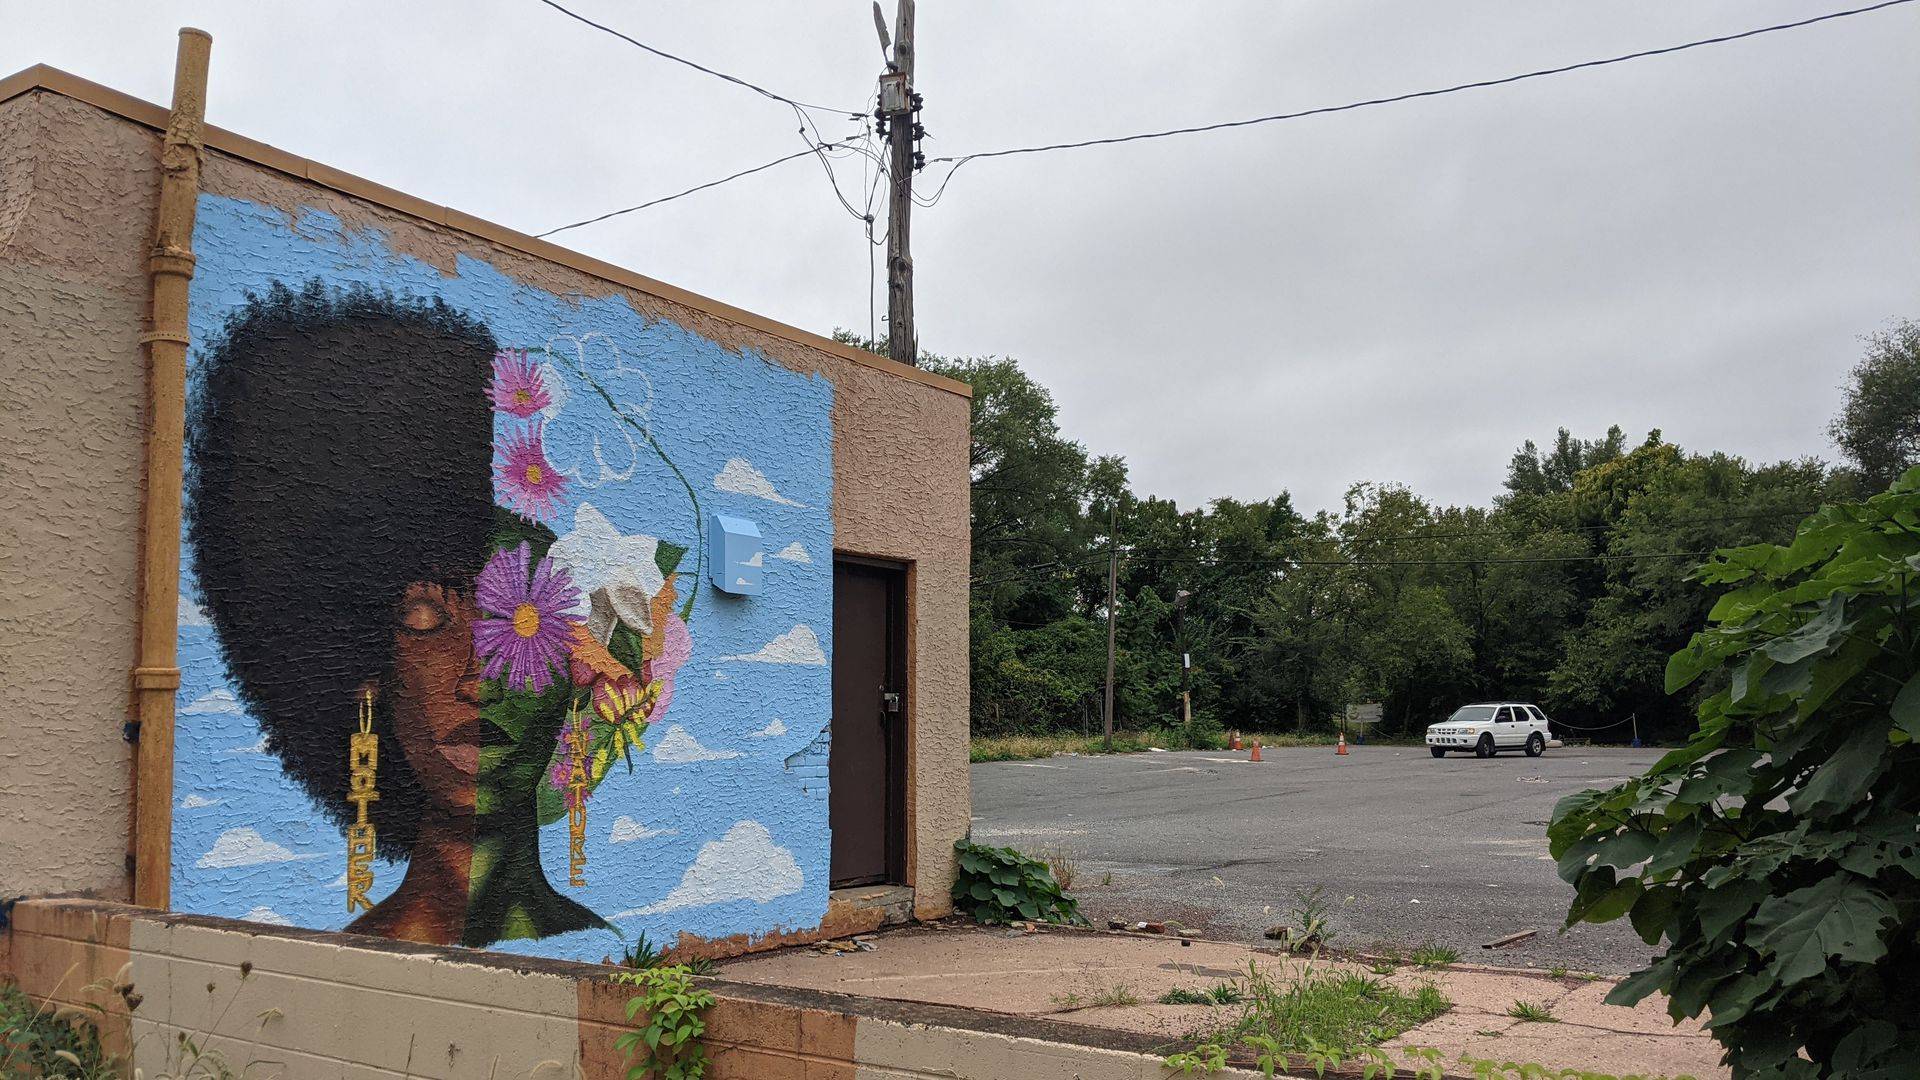 """A mural of an African American woman wearing earrings that read """"Mother"""" and """"Nature"""" is painted on vacant one-story building at N 49th Street and Parkside Avenue in West Philadelphia."""